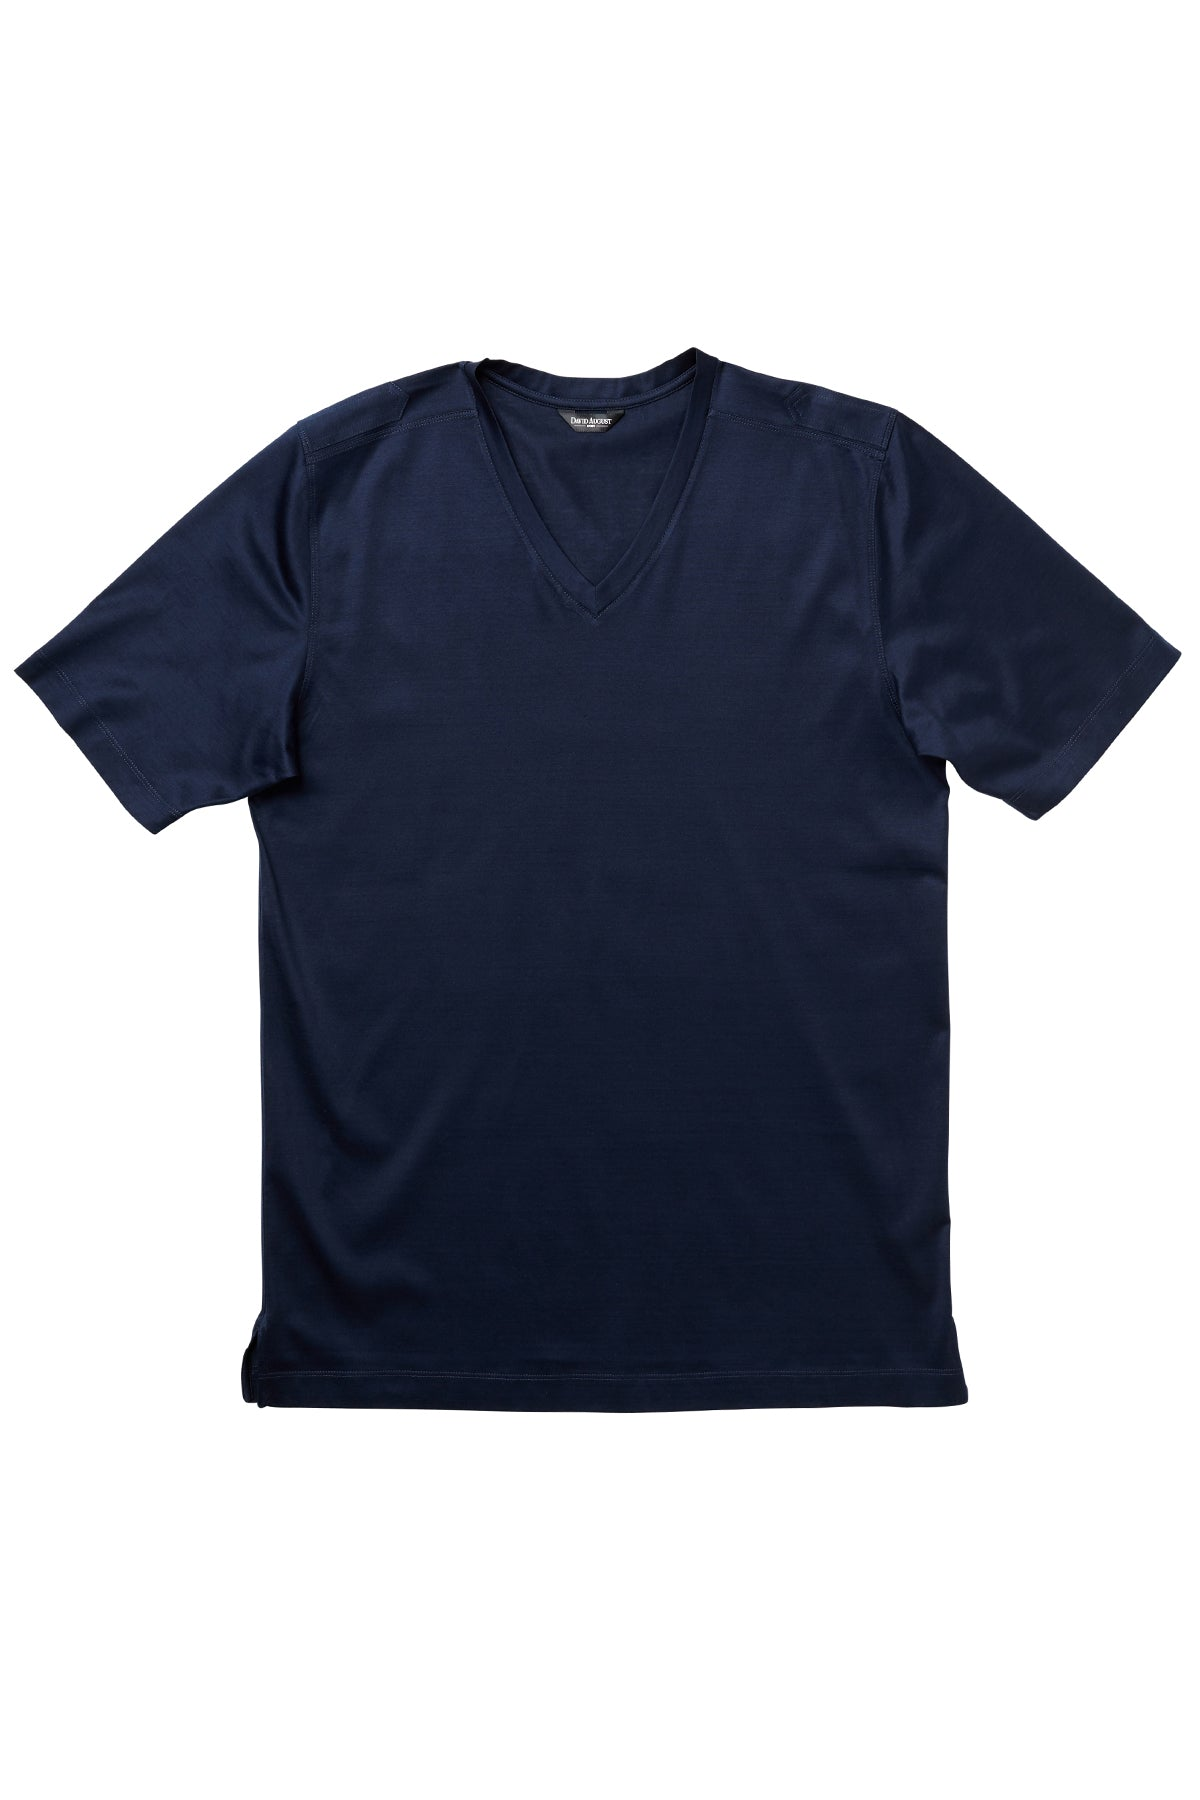 4170ddd6 David August | Luxury Mercerized Cotton V-Neck T-Shirt in Navy – David  August, Inc.